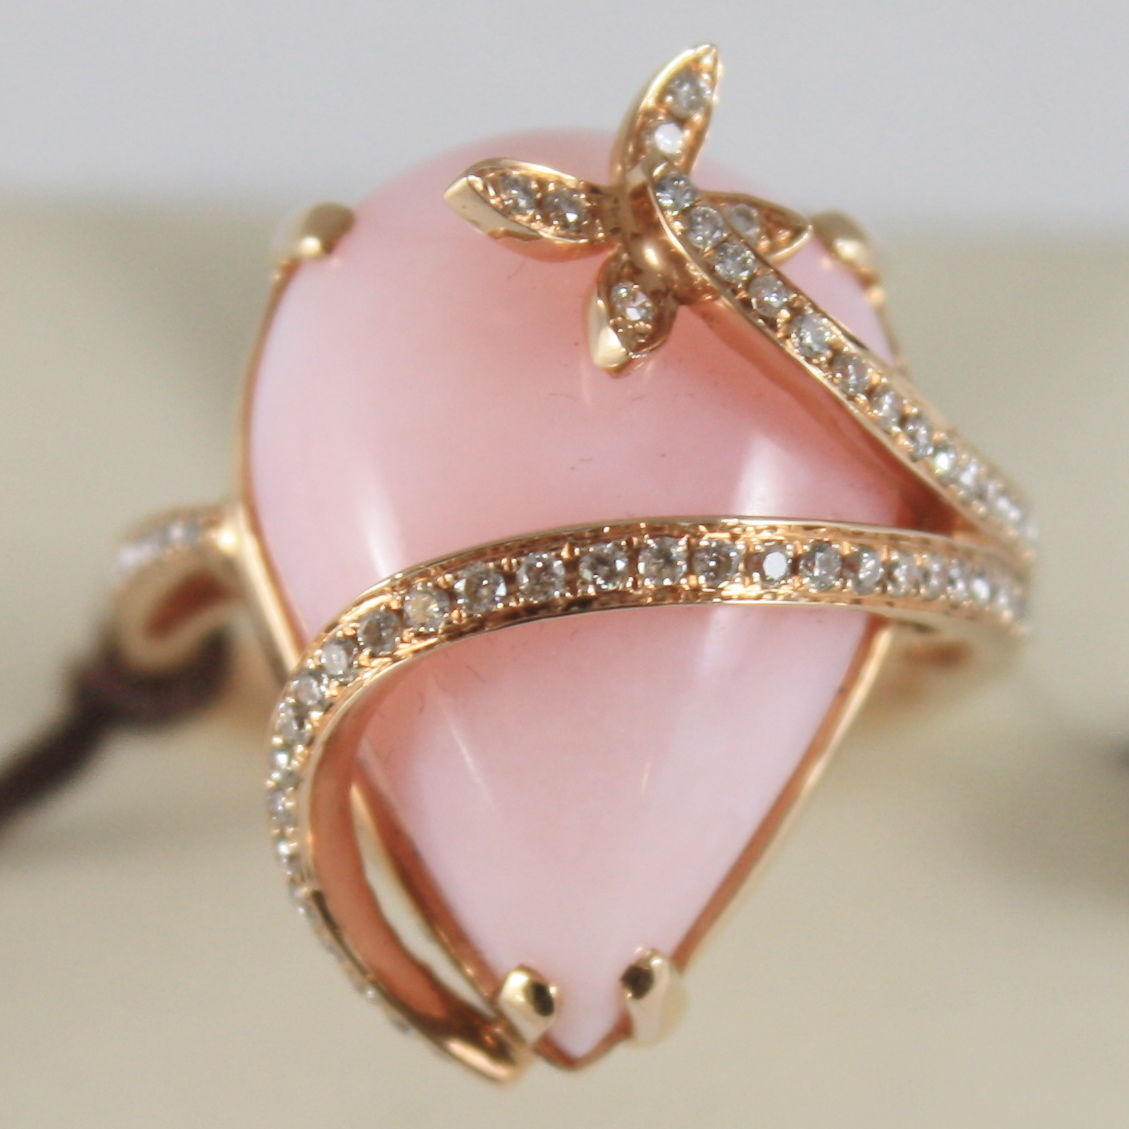 SOLID 18K PINK GOLD RING DROP OPAL AND DIAMONDS CT 0,29, BUTTERFLY MADE IN ITALY